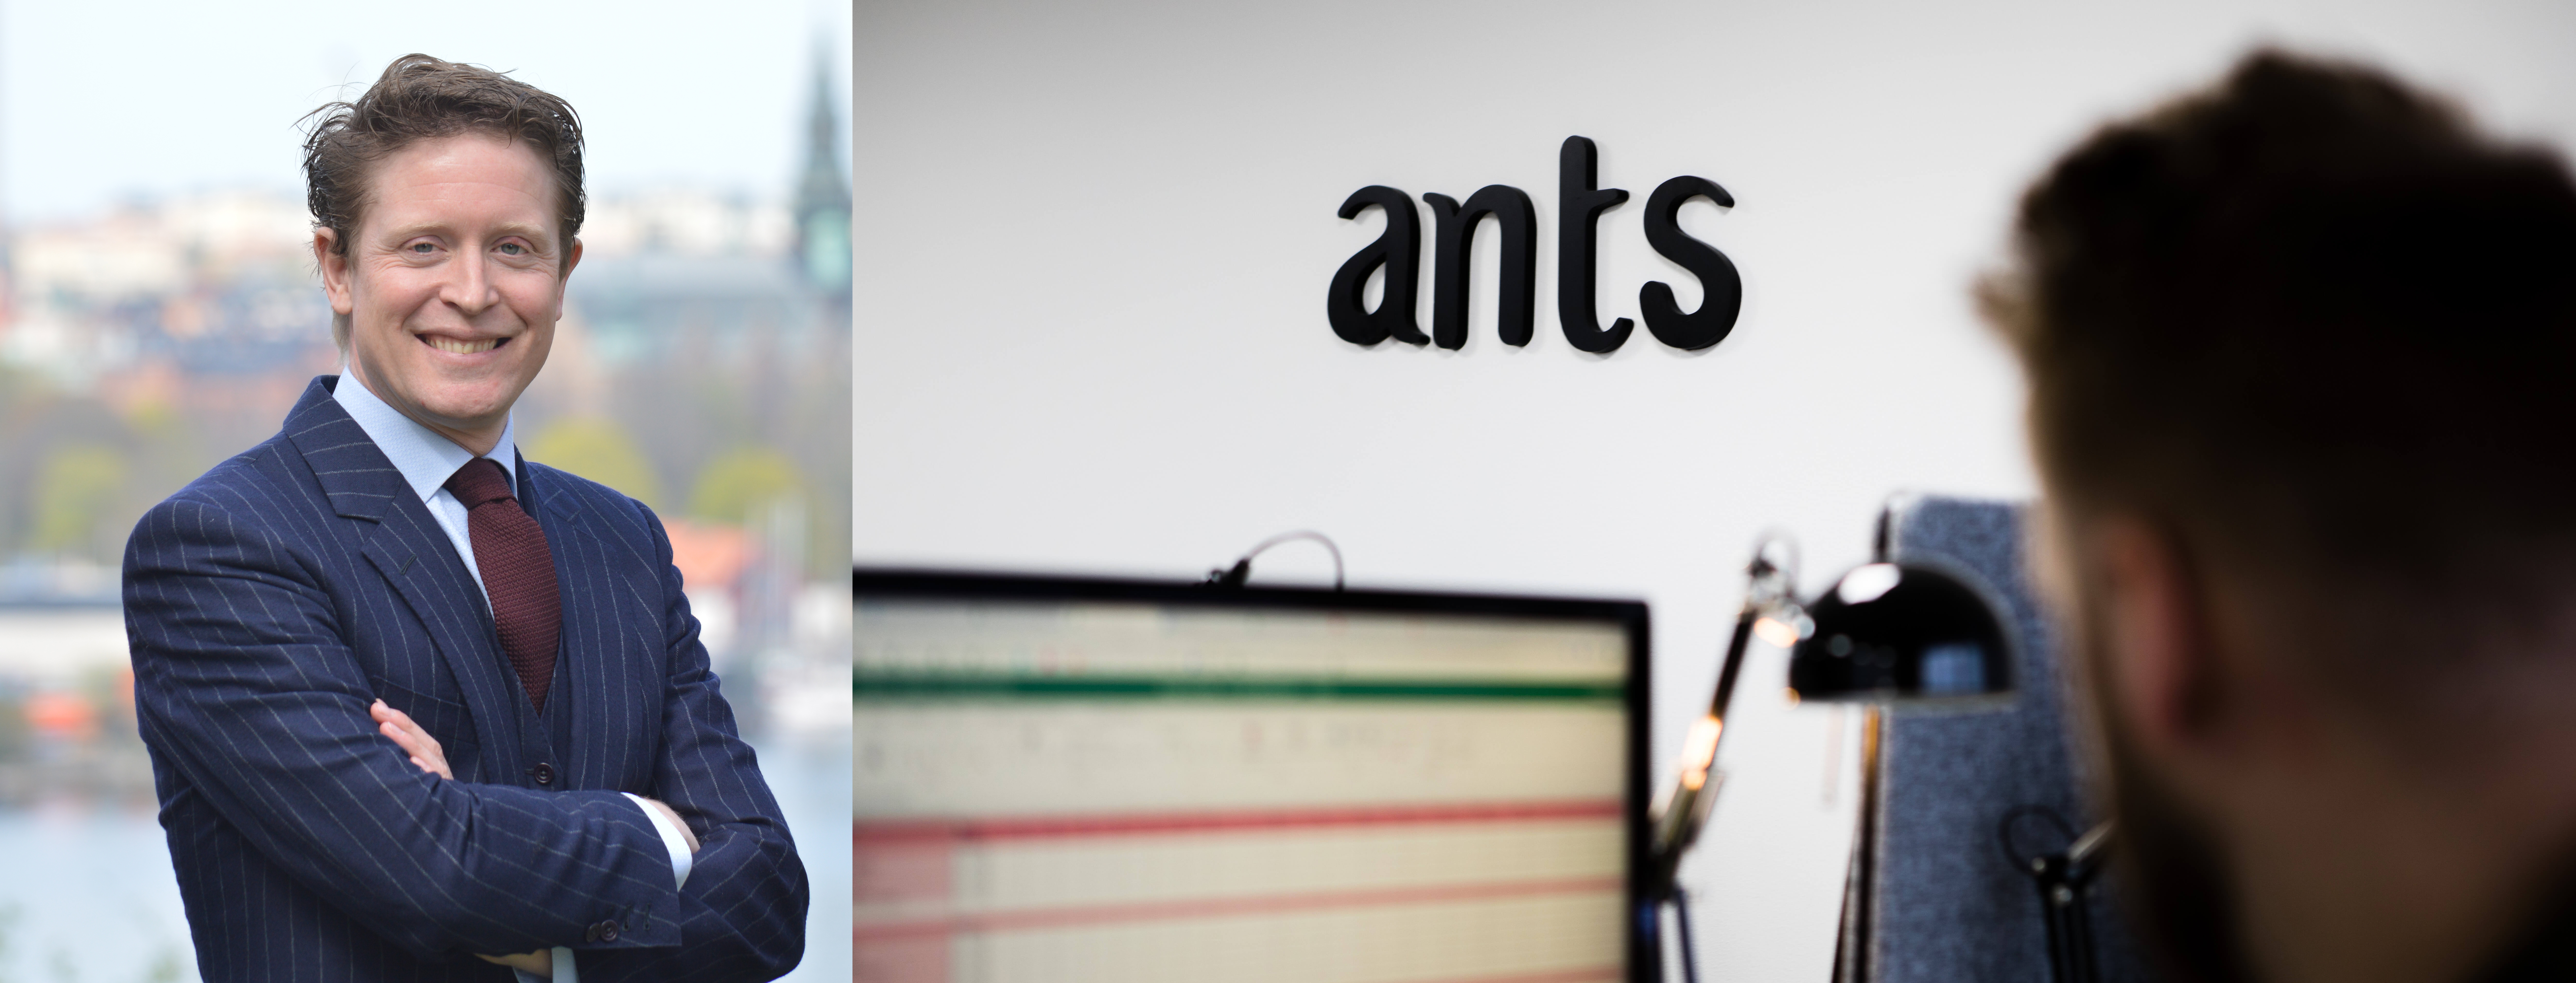 Ants_collage